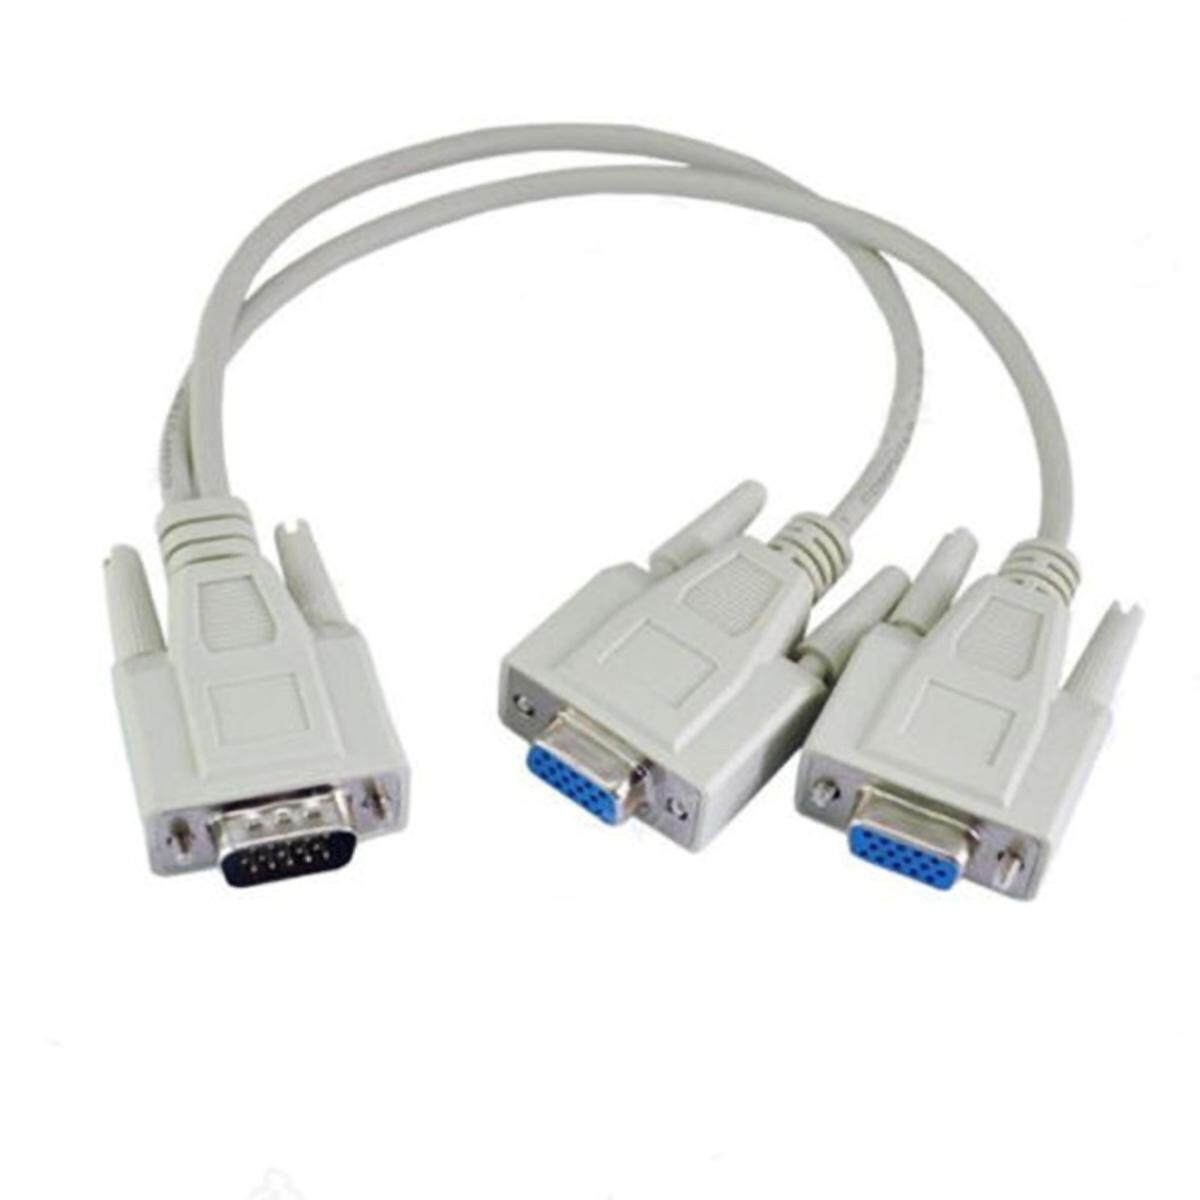 Projector Cable Vga1 Revolution 2 Female Vga One Point Two Twin Line 1m To2f Computer Tv Monitor Projector Line By Freebang.